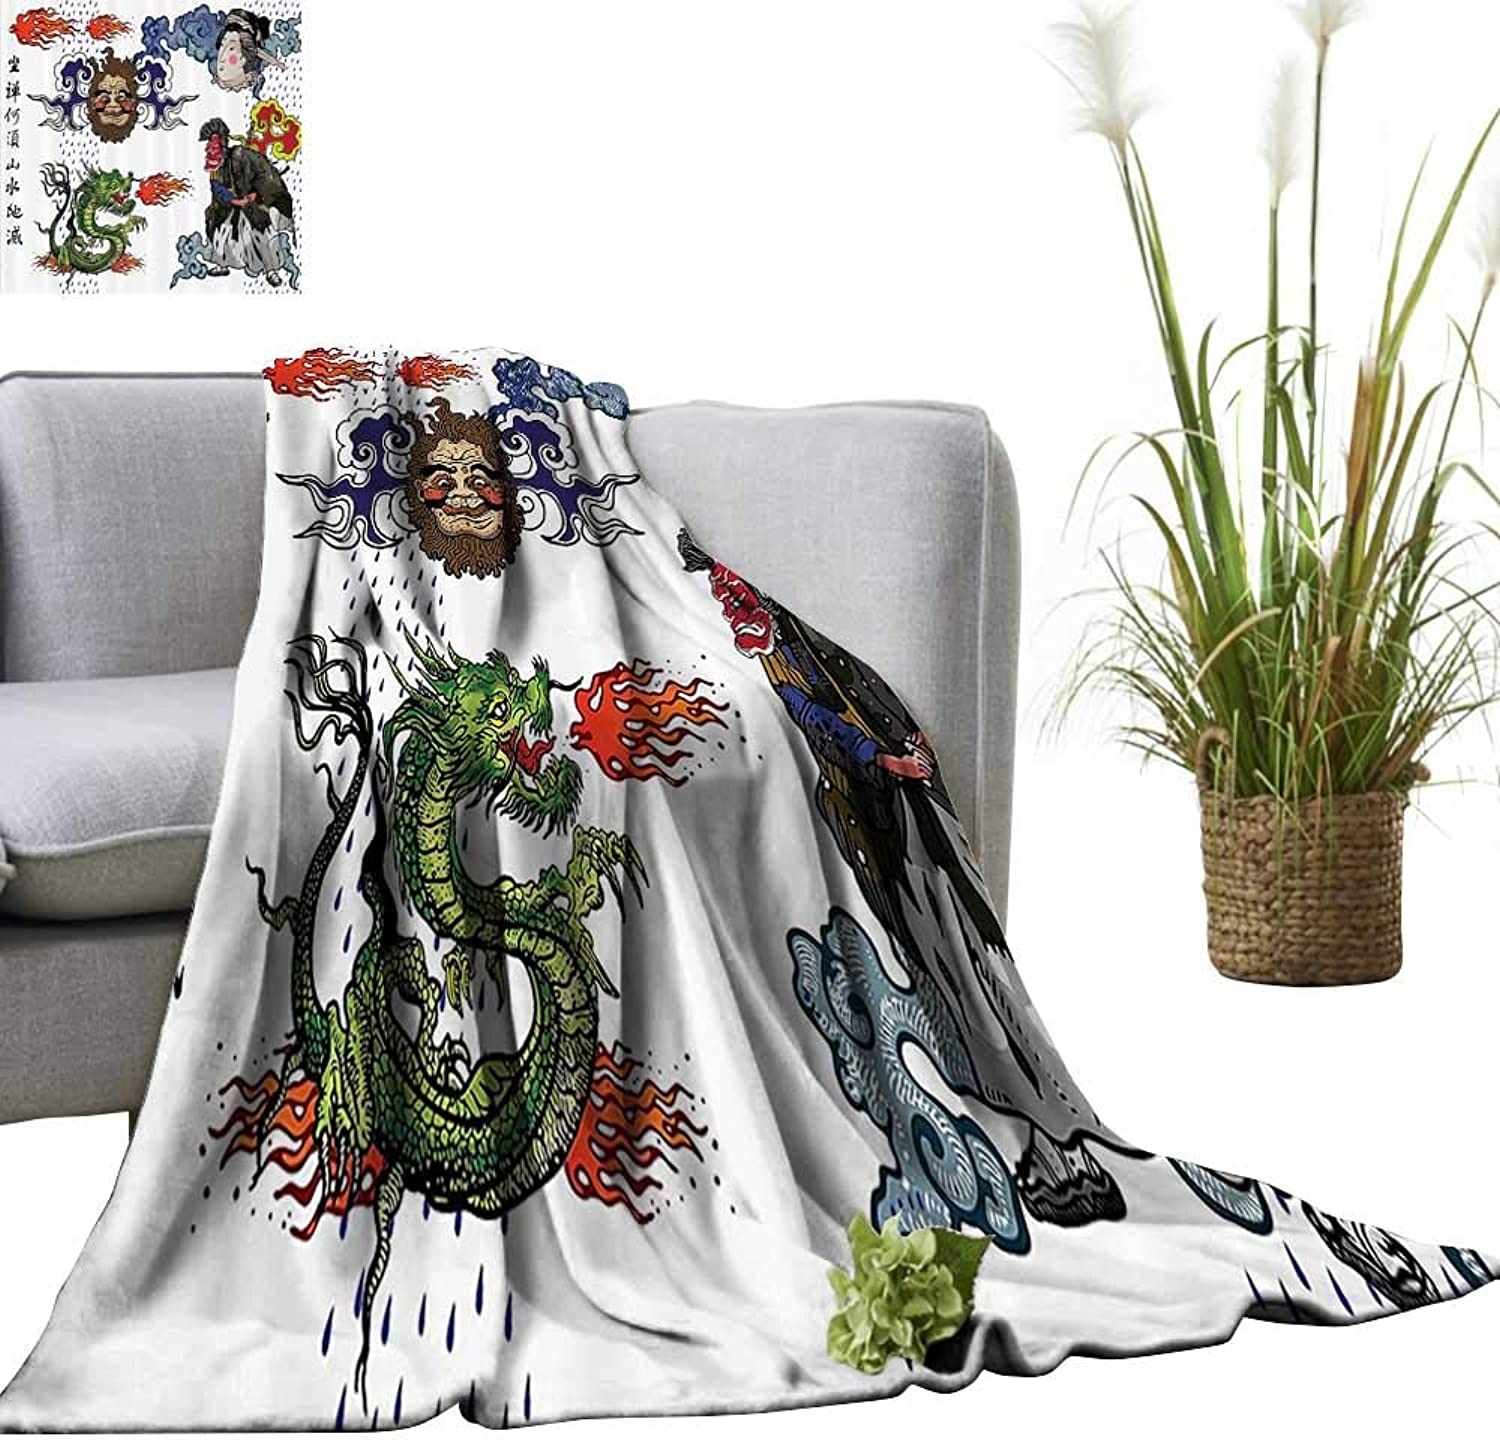 YOYI Digital Printing Blanket eJapanese Manga Figures Drag with Fire Man with Kimo Geisha Tribal Characters Better Deeper Sleep 50 x70